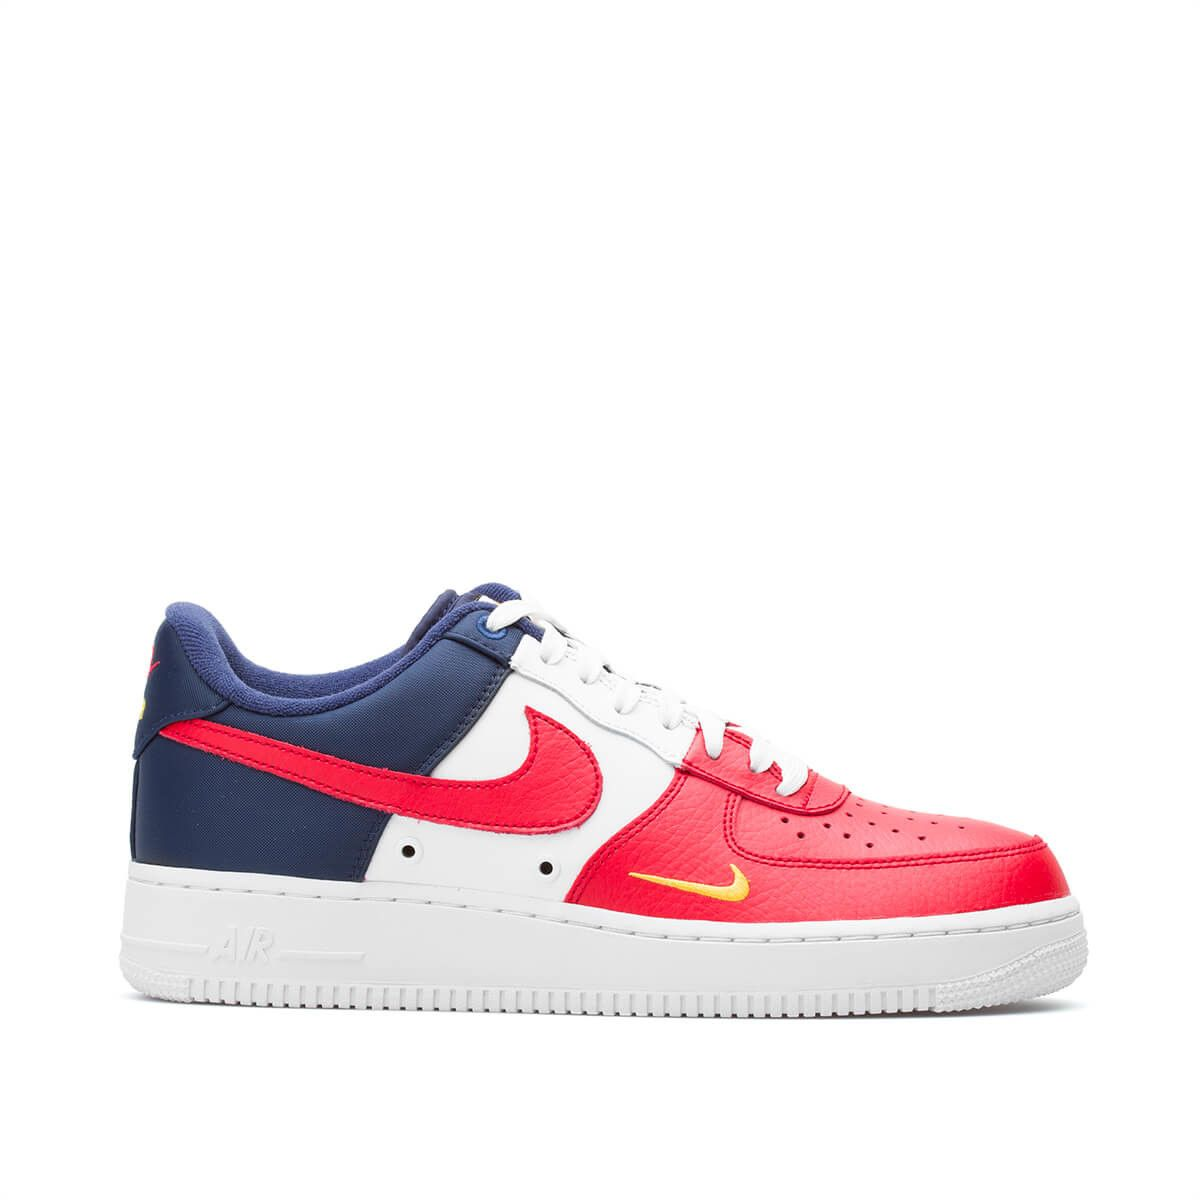 a9c9566f696 Nike Air Force 1 07 LV8 from the Fall  17 collection in multicolor